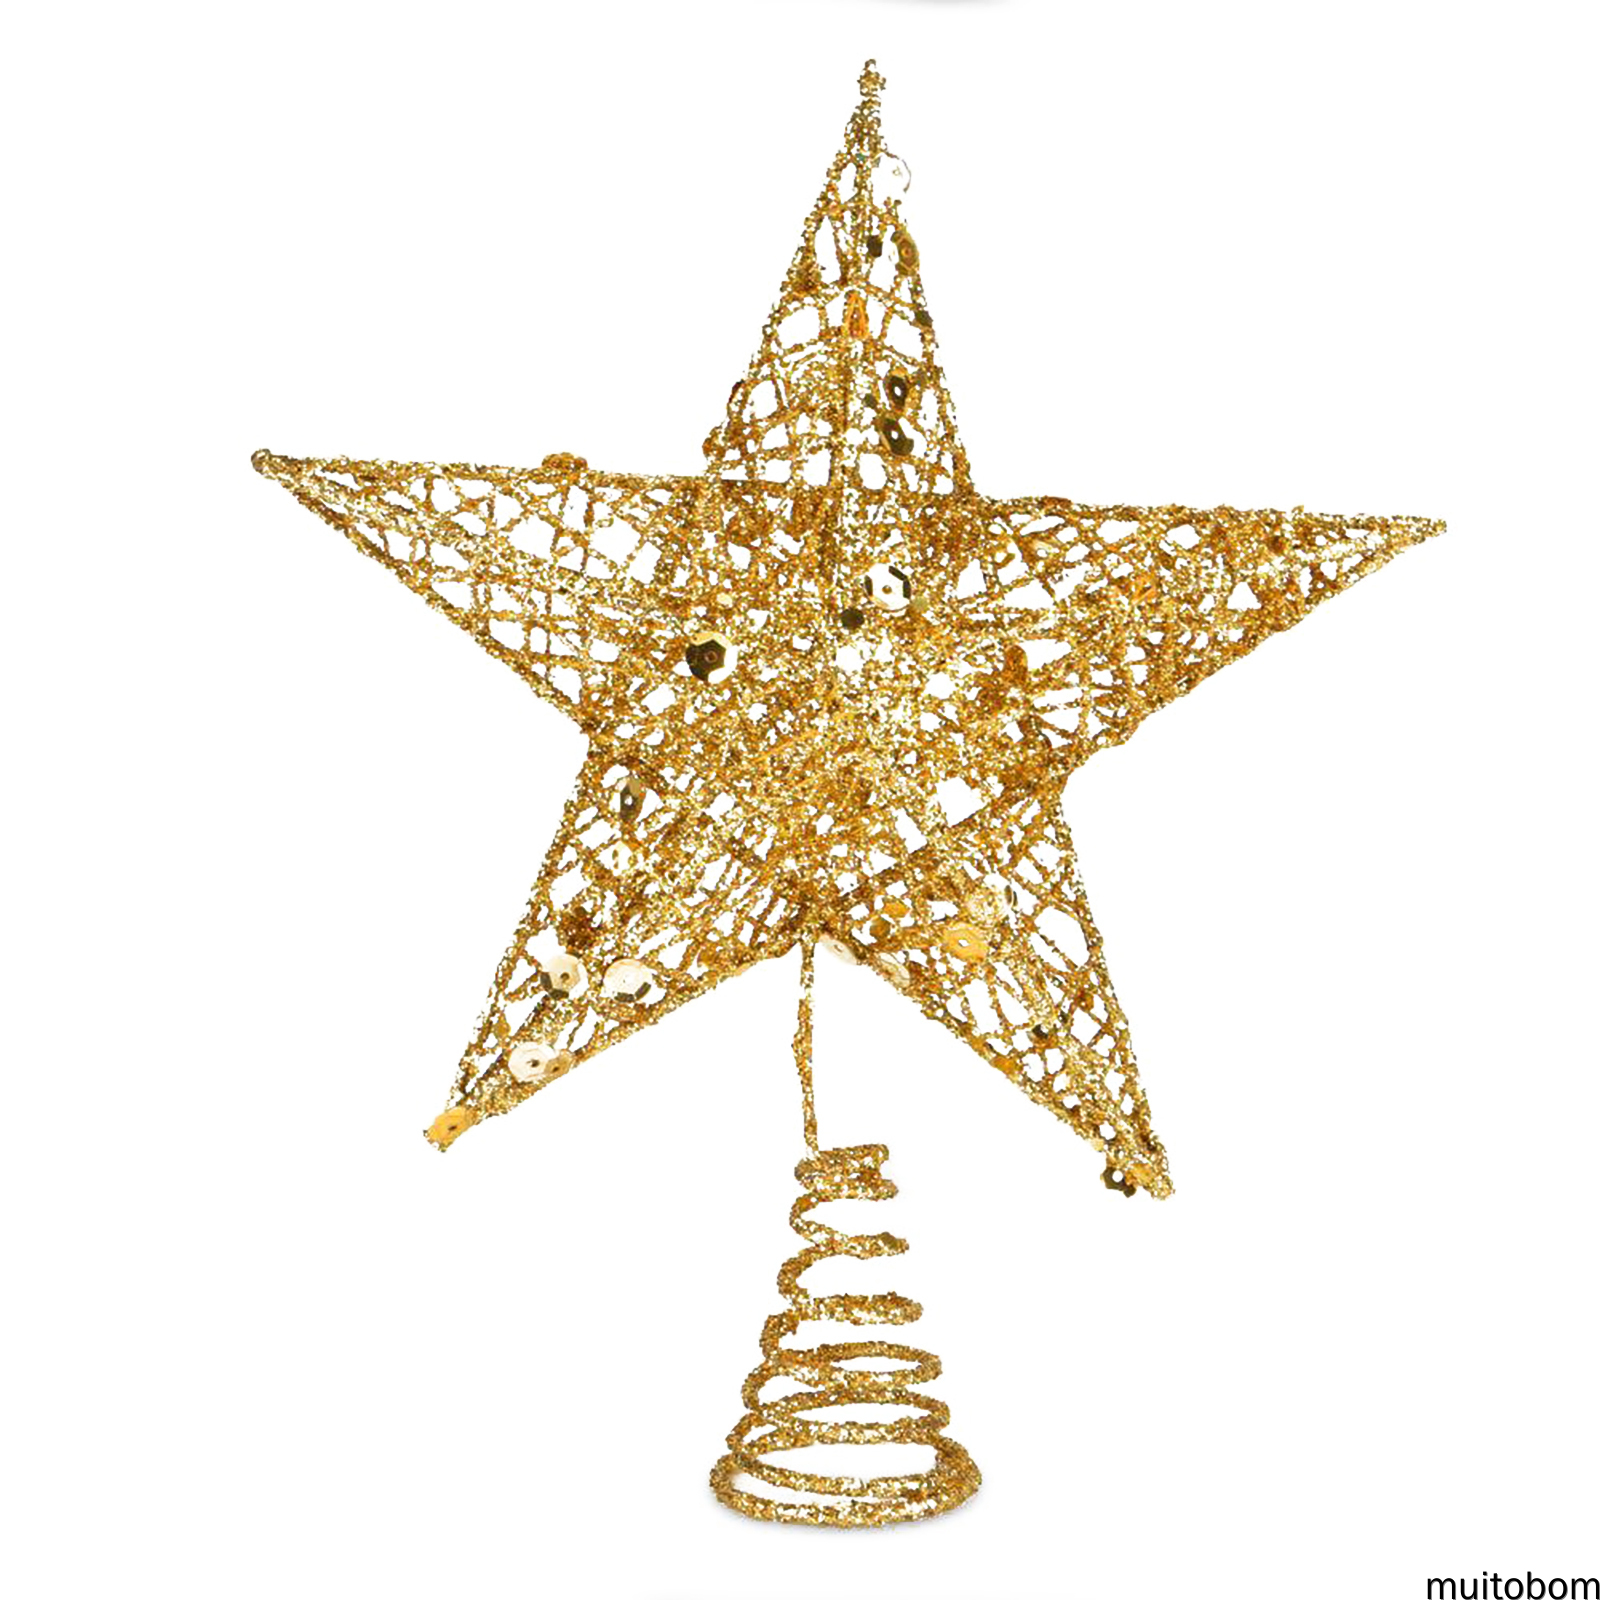 Muitobom Christmas Tree Topper Star With Colorful Glitter Tree Topper For Christmas Tree Decor 3 Sizes 6 Colors Rose Gold Pink Bule Red Golden Shopee Singapore